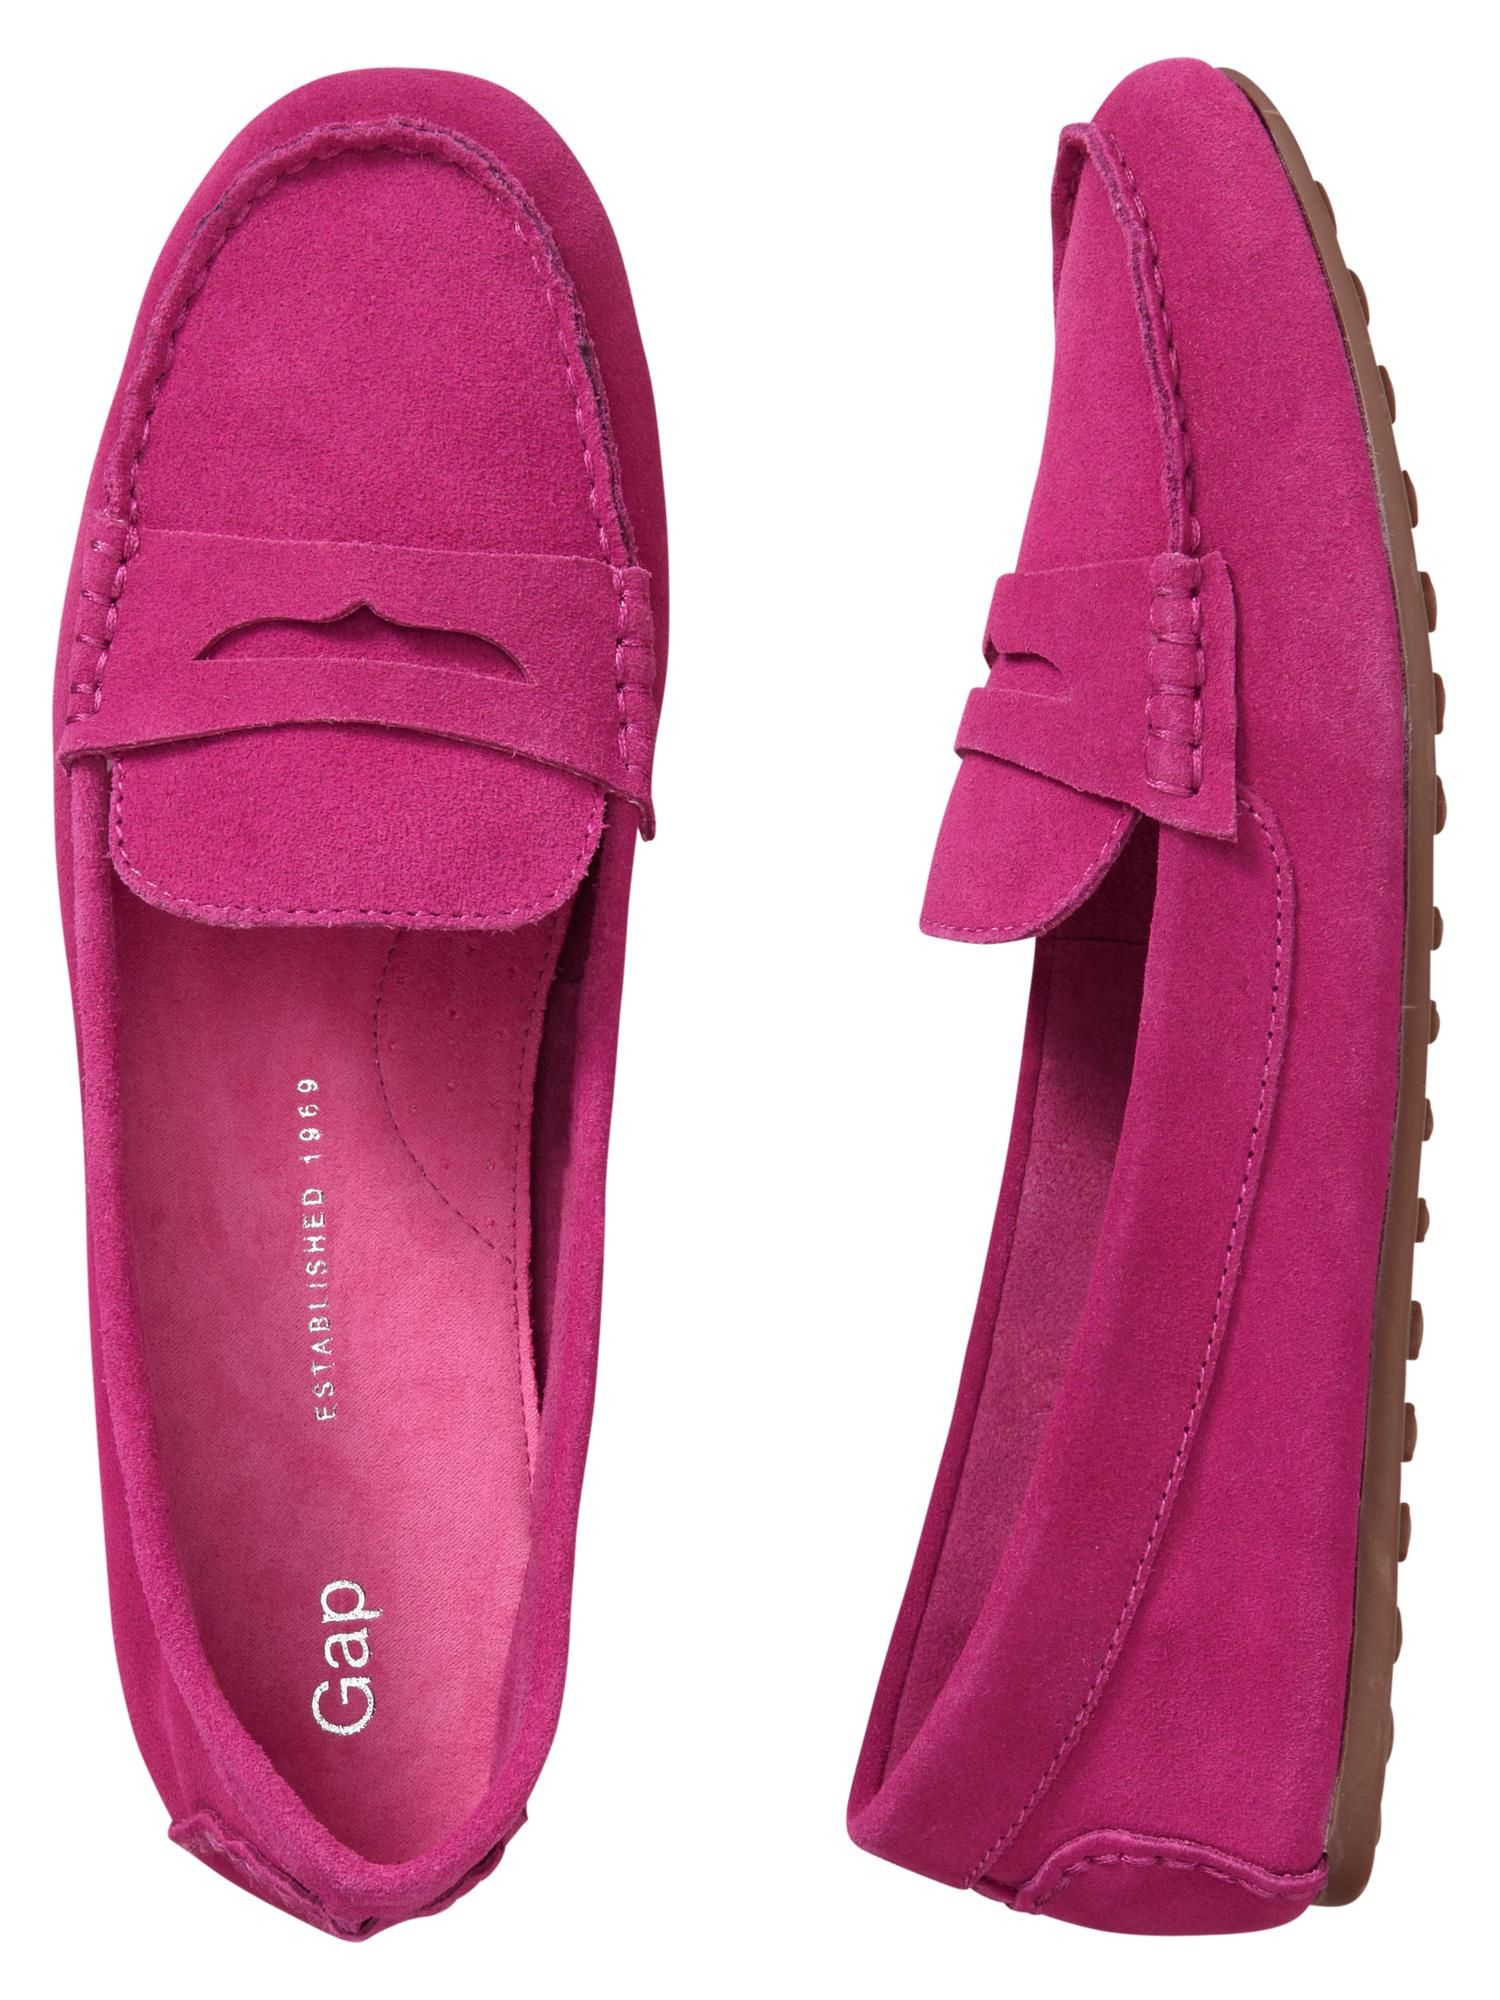 0c127c7484968f pop of color | driving moccasins via GAP | W E A R in 2019 | Shoes ...